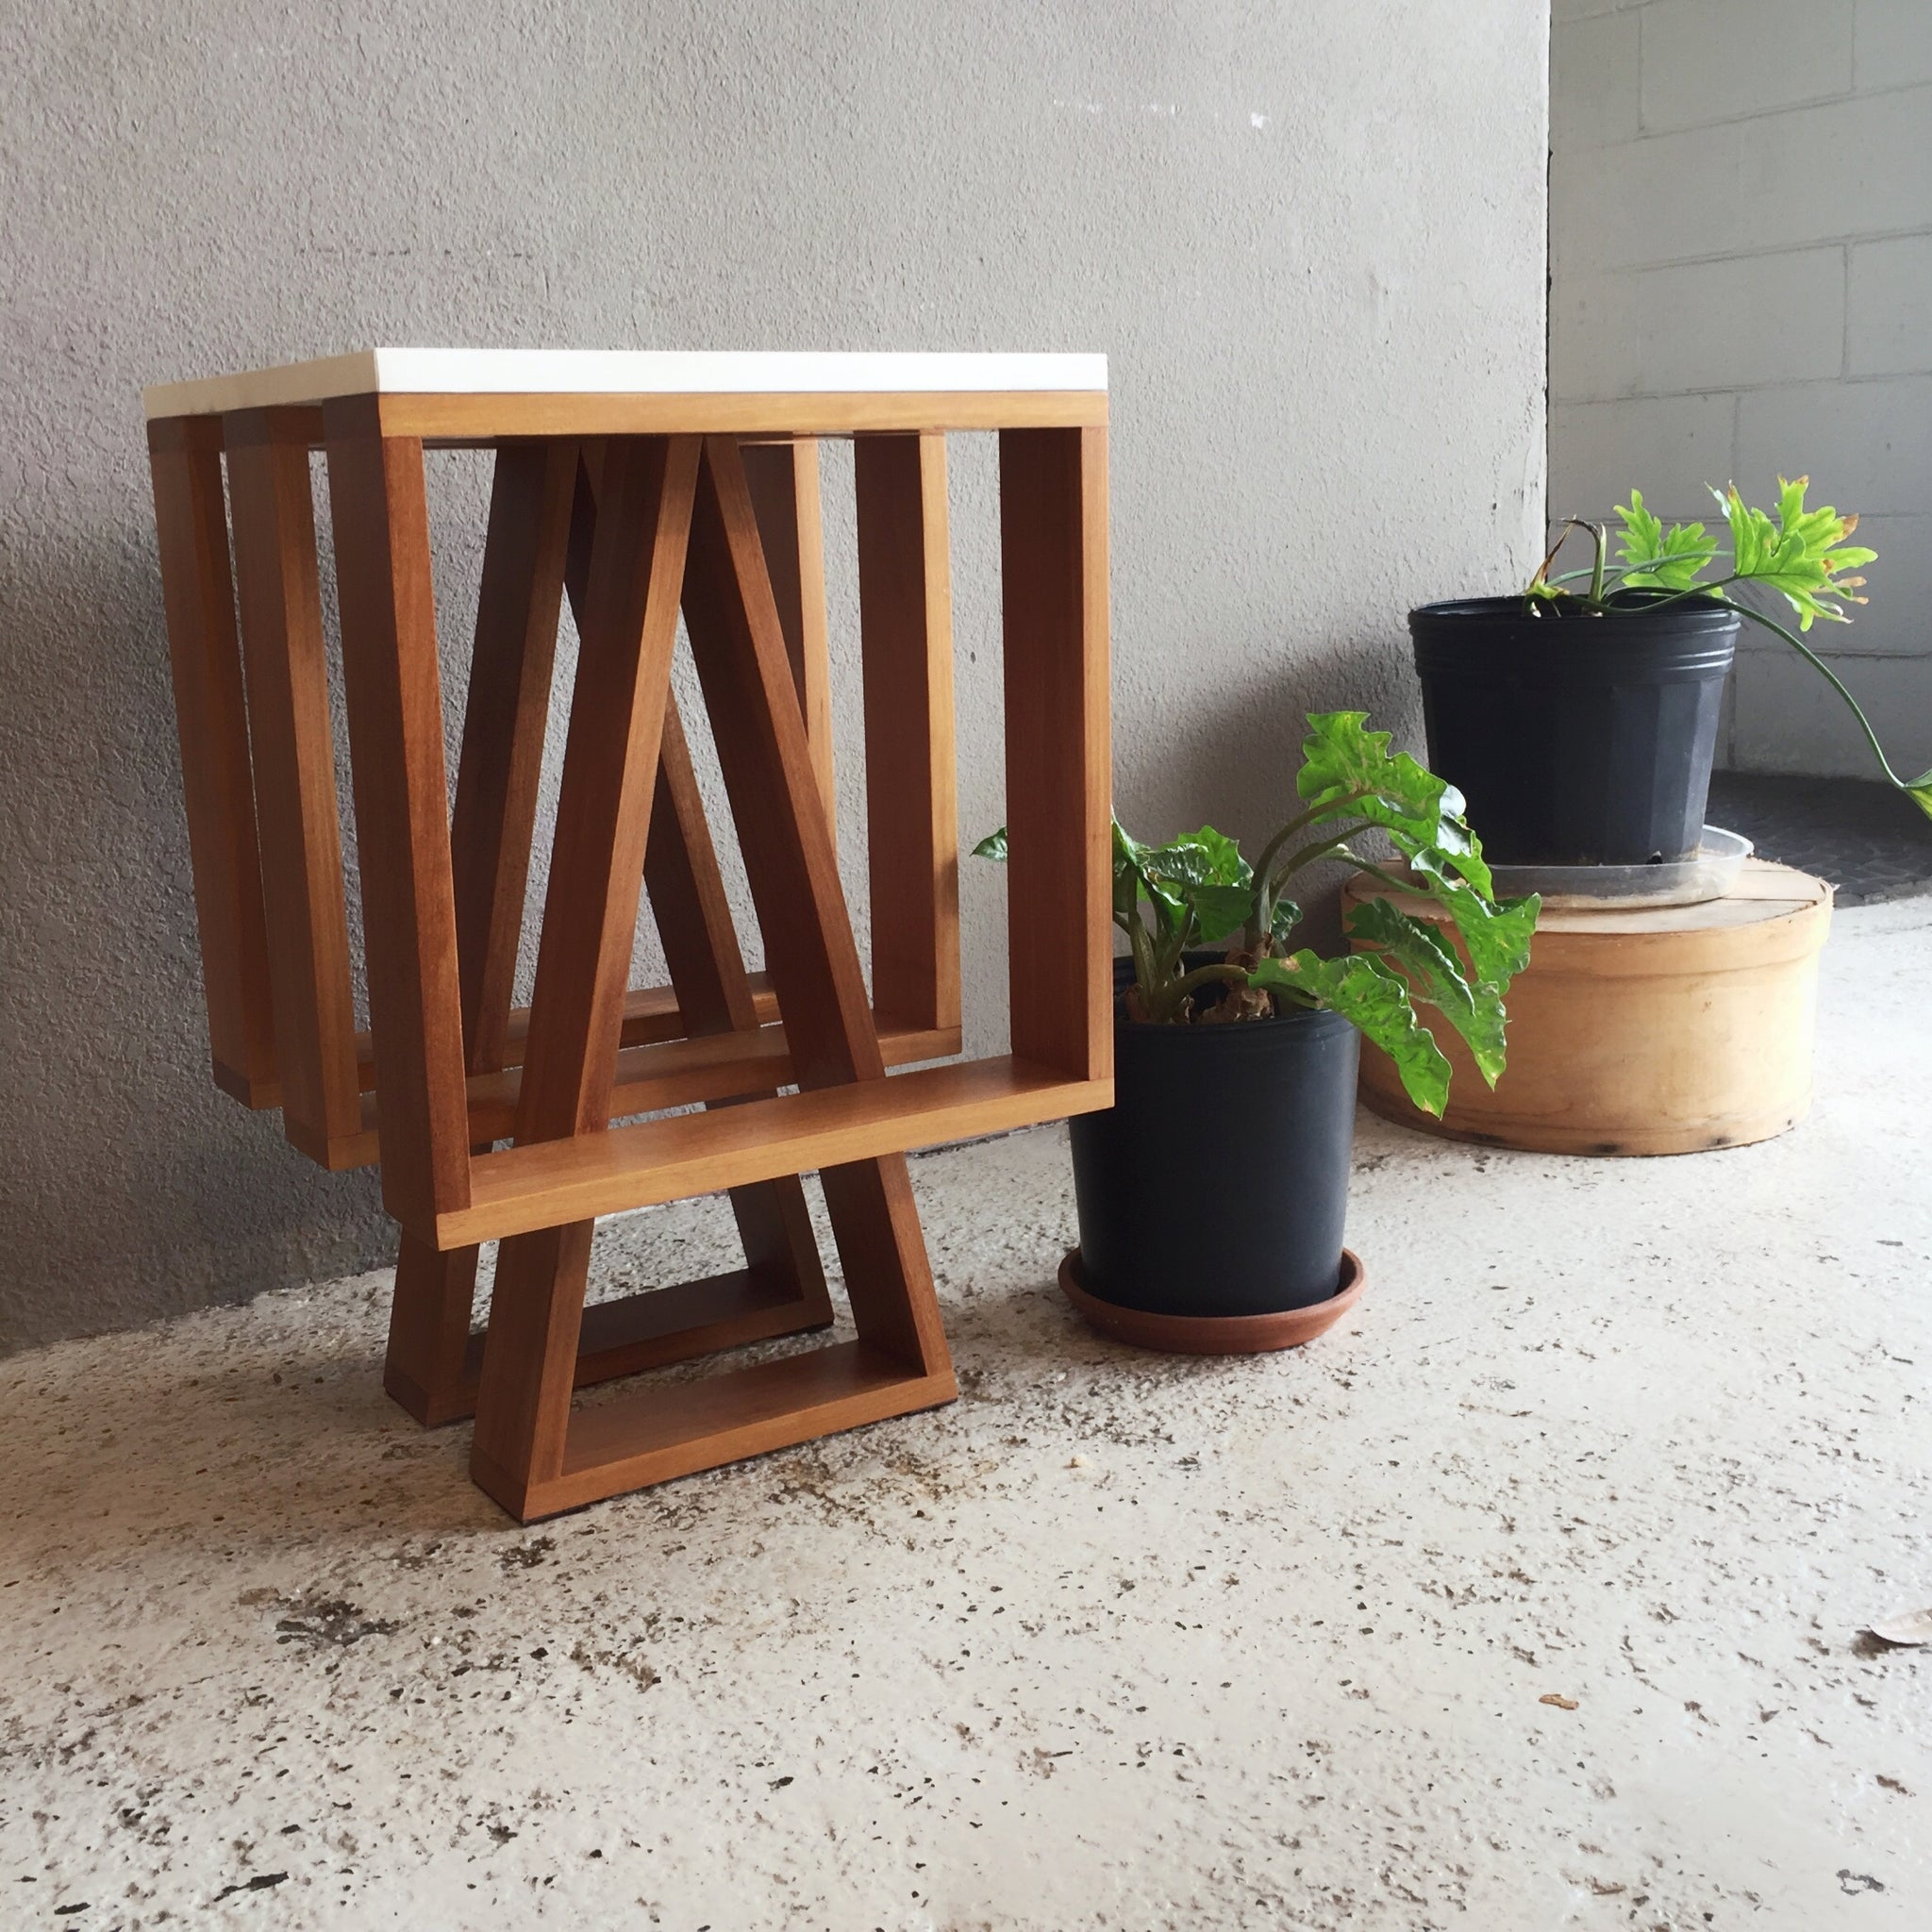 vala side table